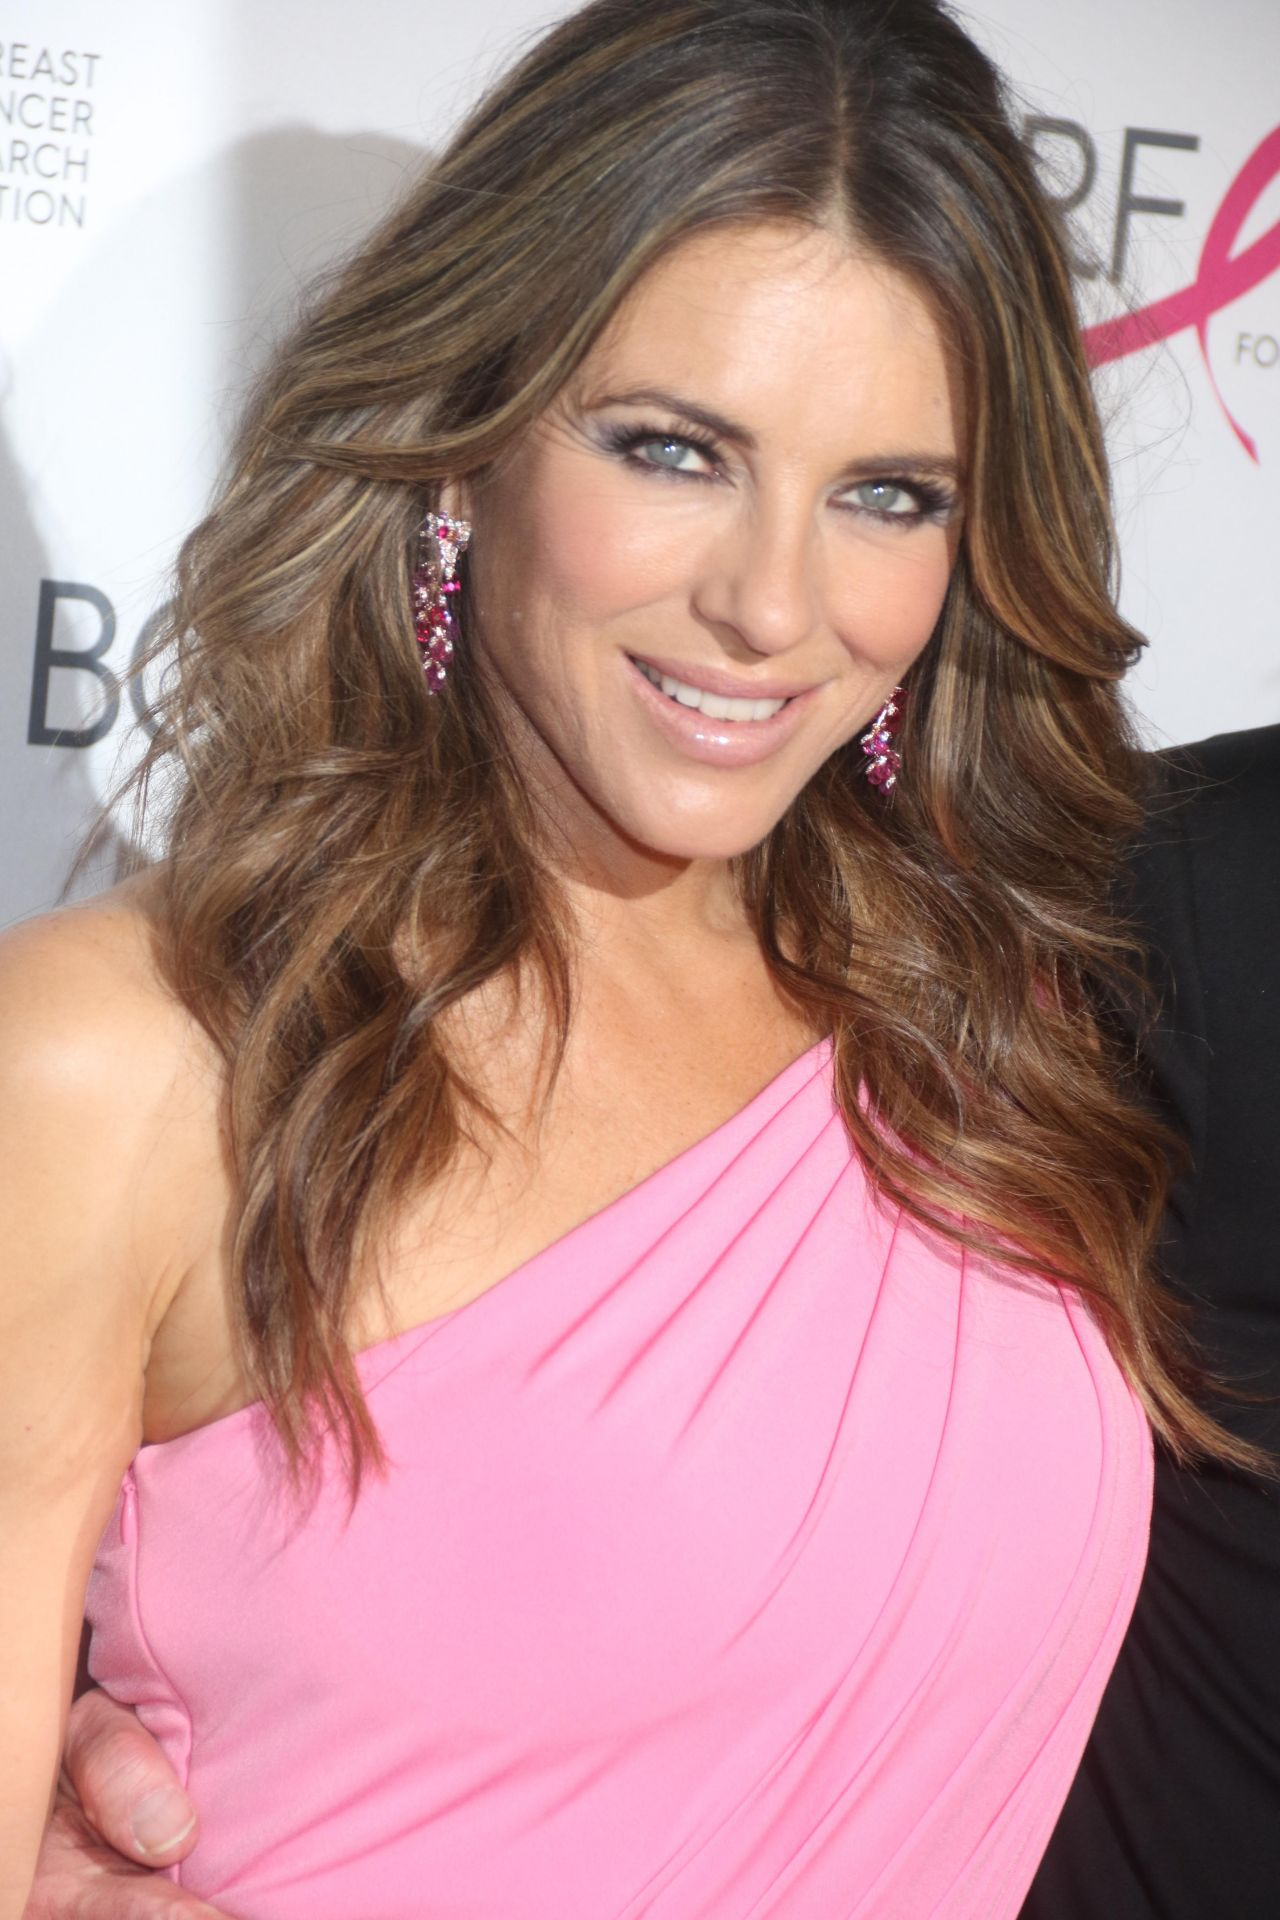 elizabeth hurley - photo #15